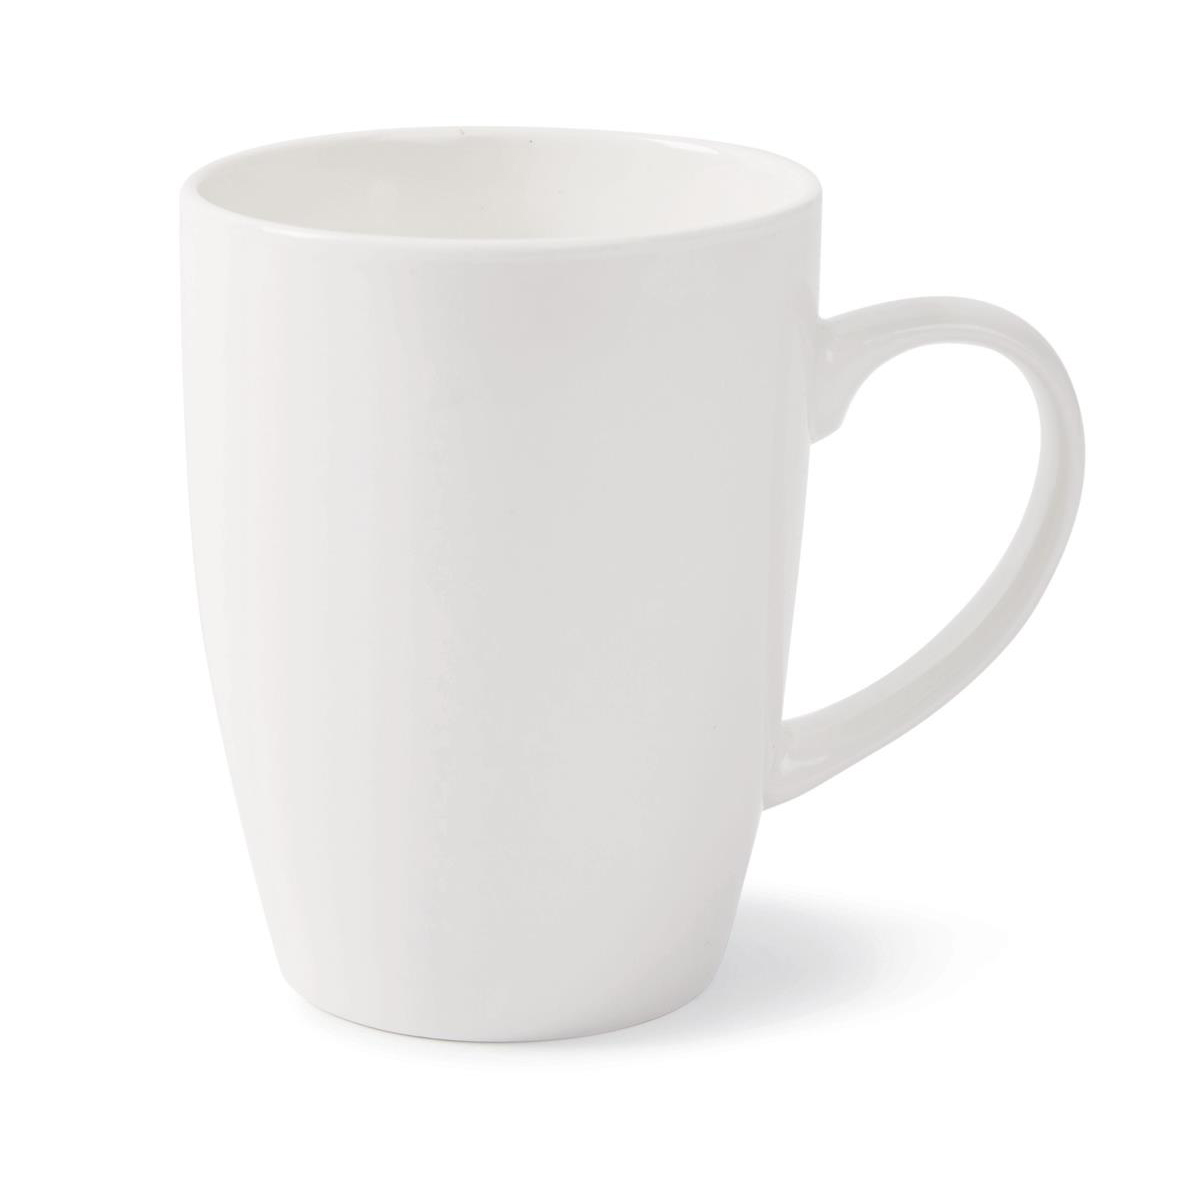 Earthenware Bullet Mugs 12oz White Ref 0399391 Pack 12